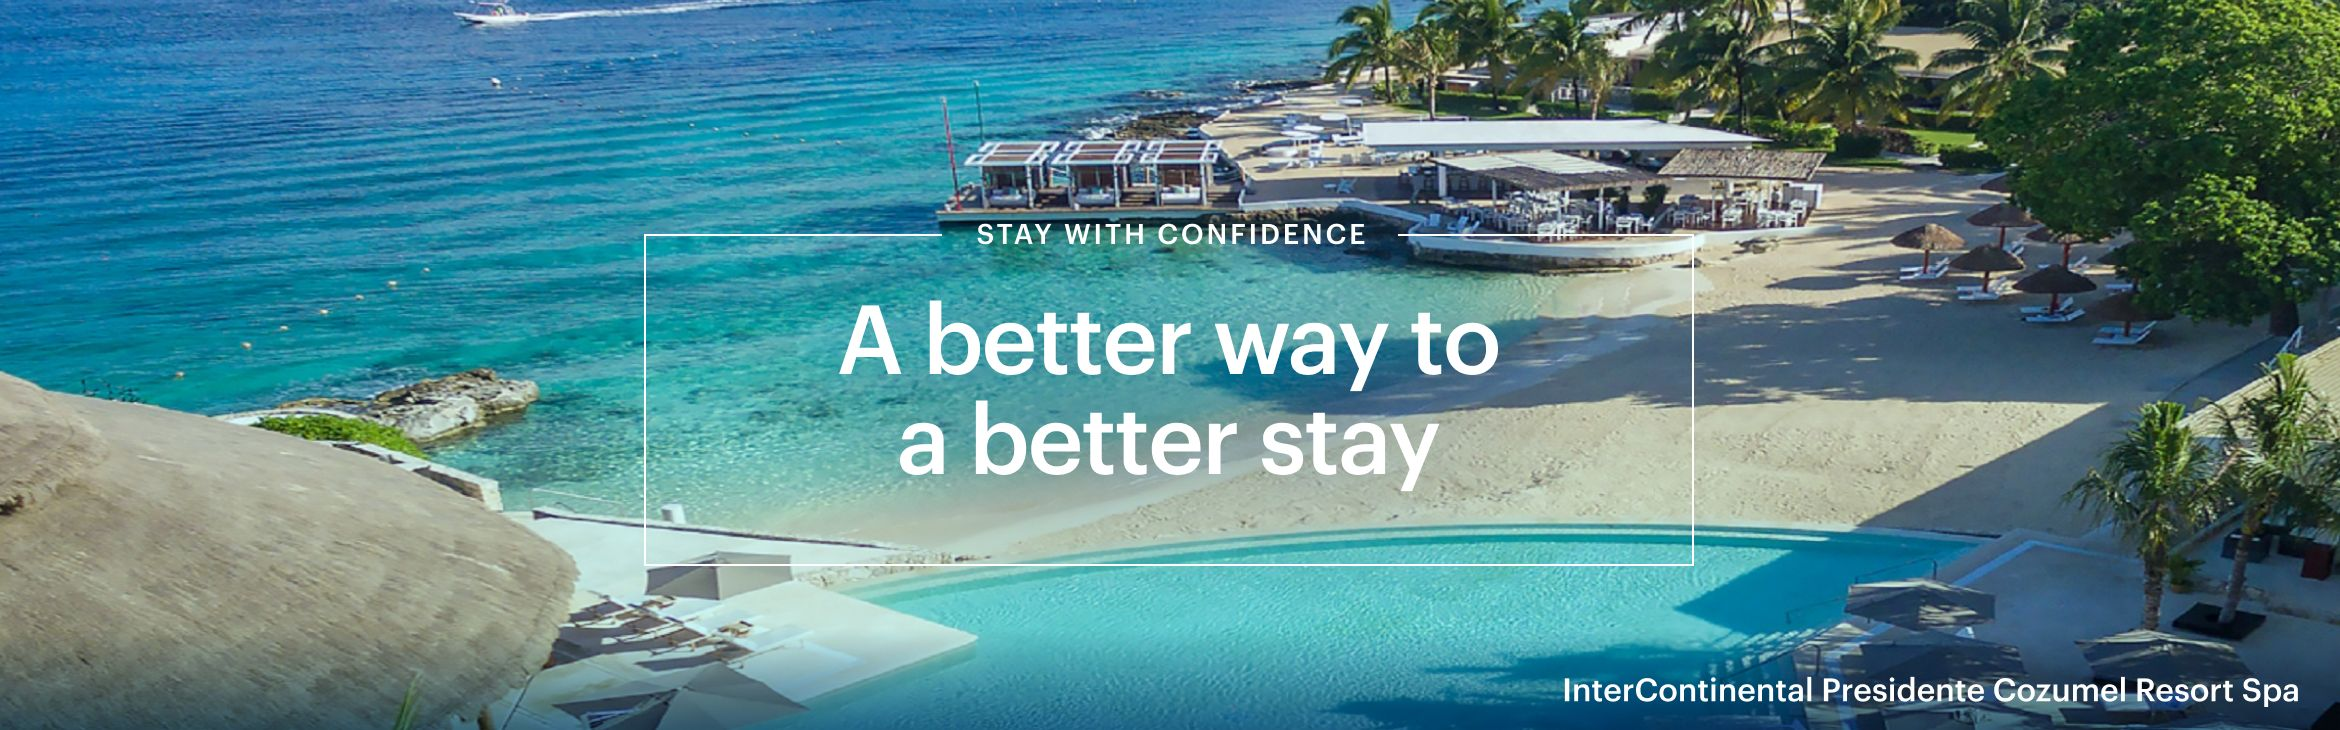 A better way to a better stay